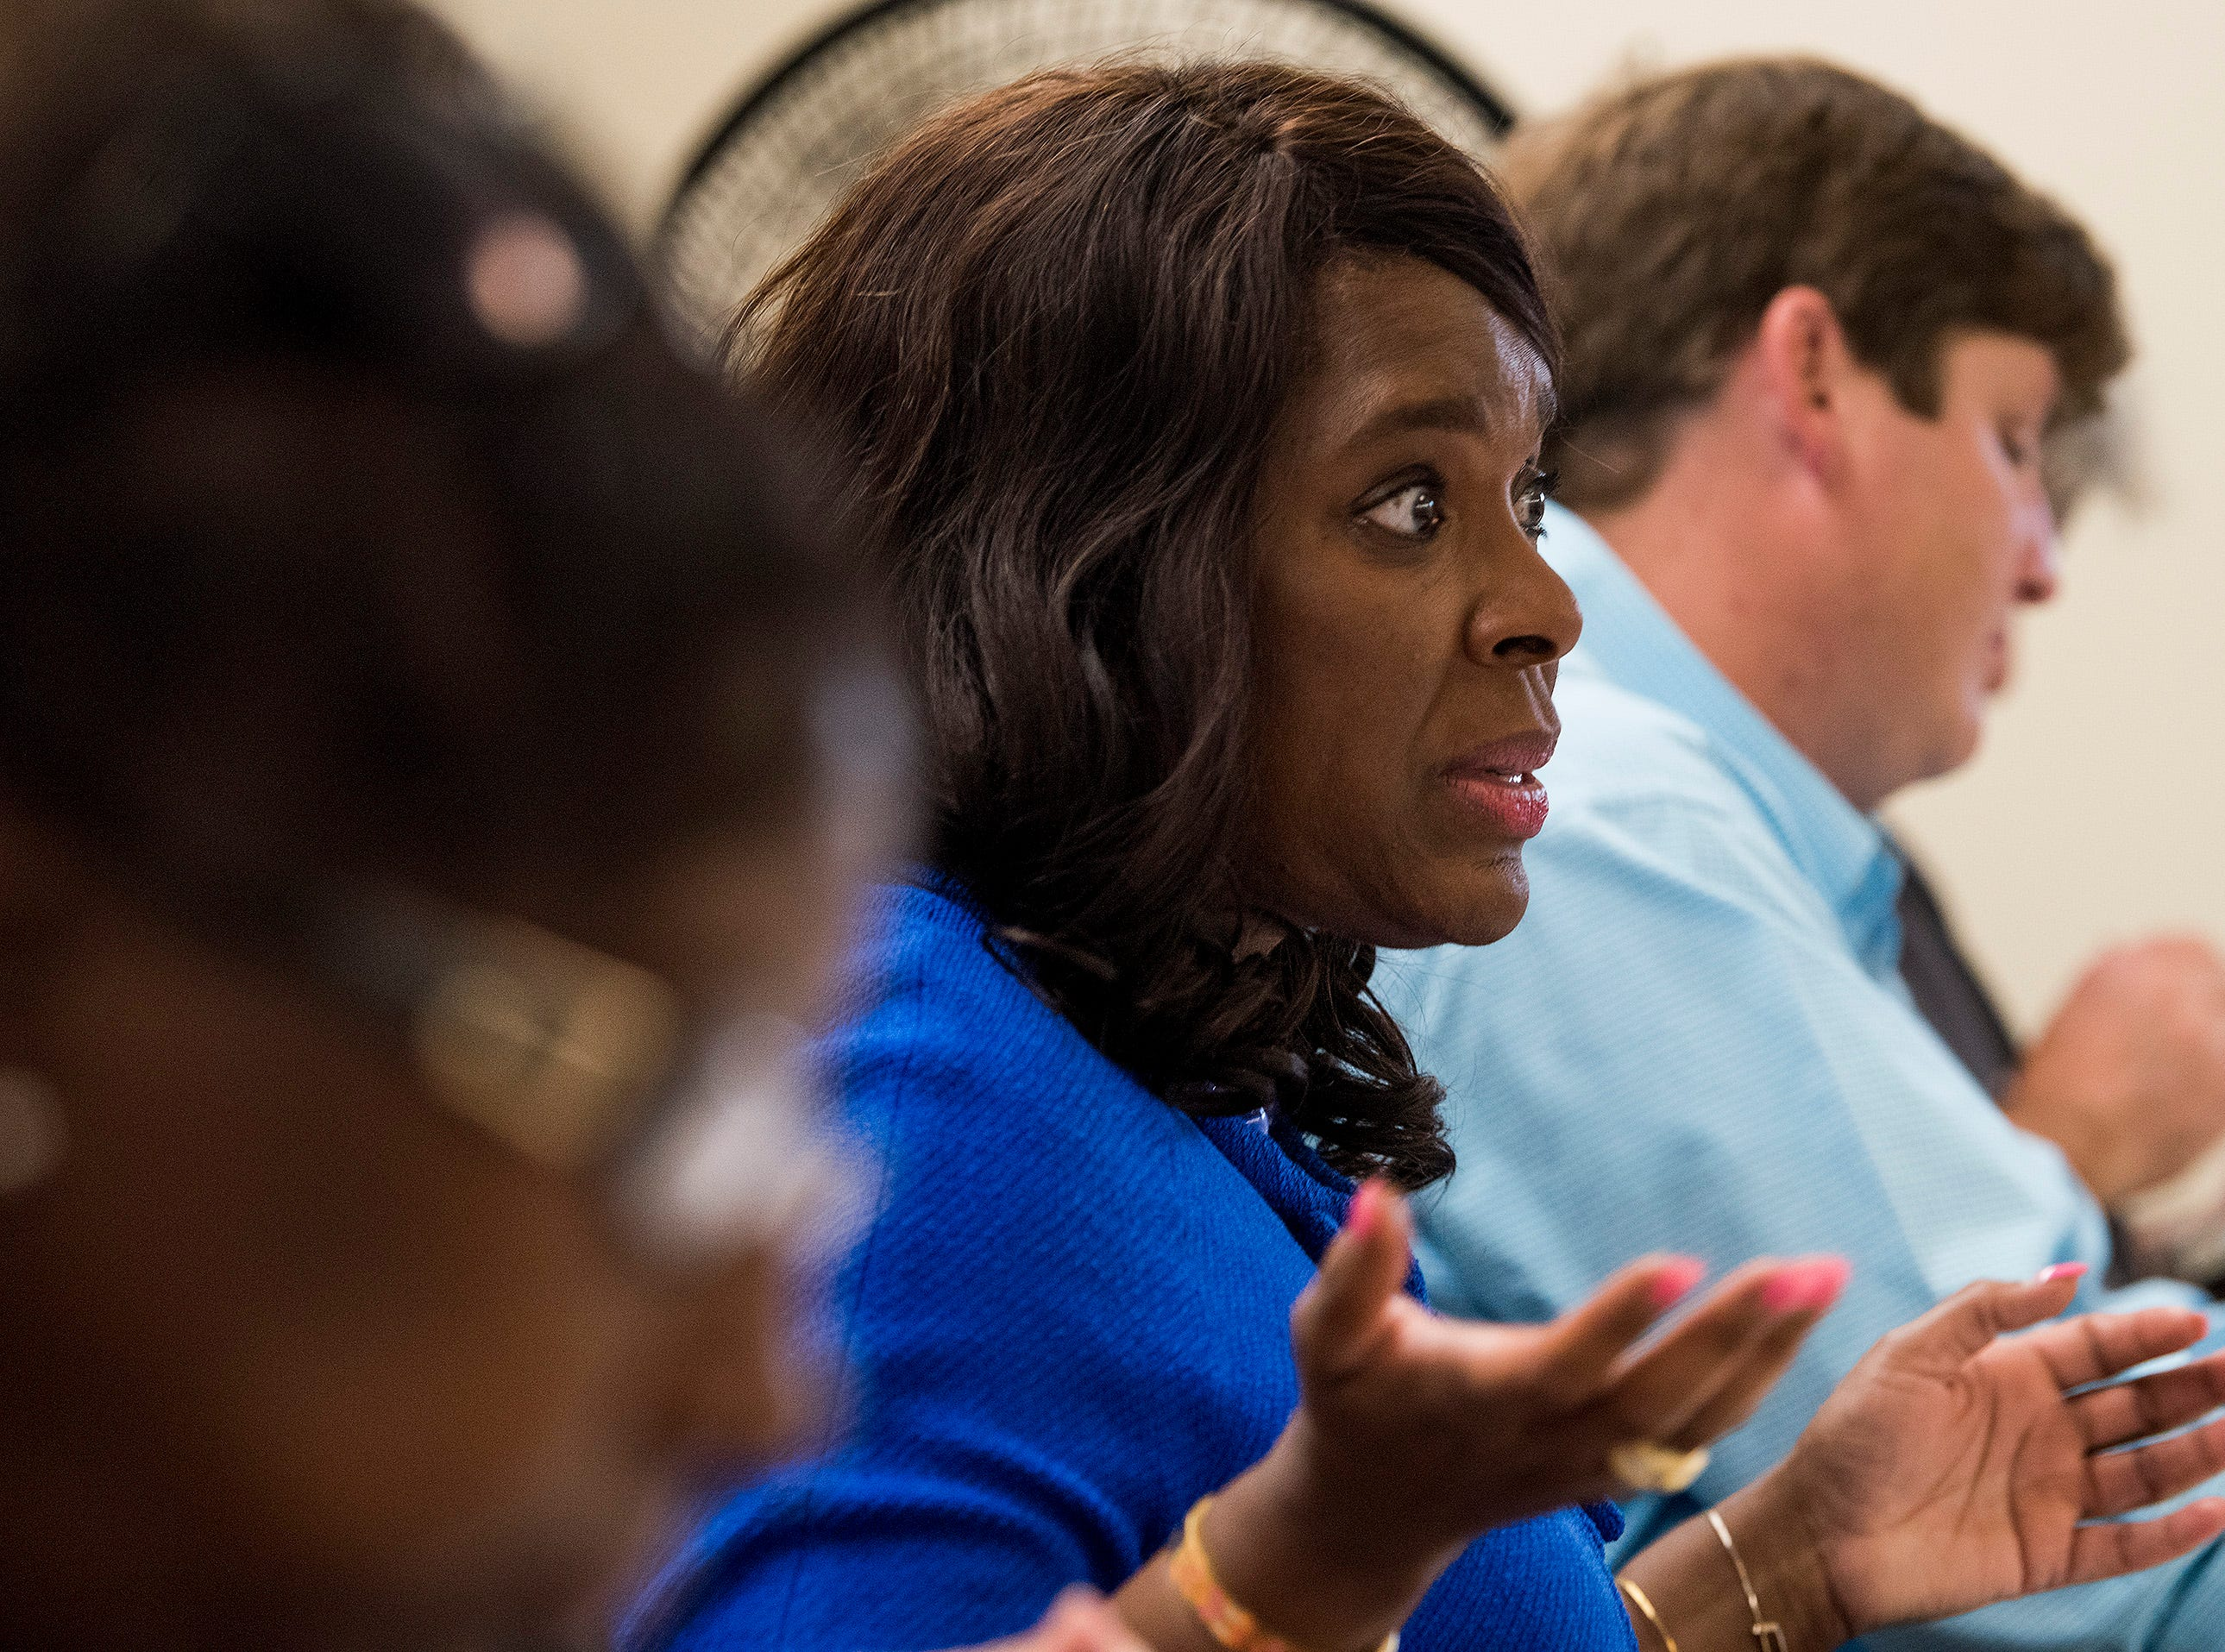 Congresswomen Terri Sewell leads a discussion on solutions after taking a group of engineering and health experts to homes with sewage problems in rural Lowndes County, Ala., on Monday, July 30, 2018.